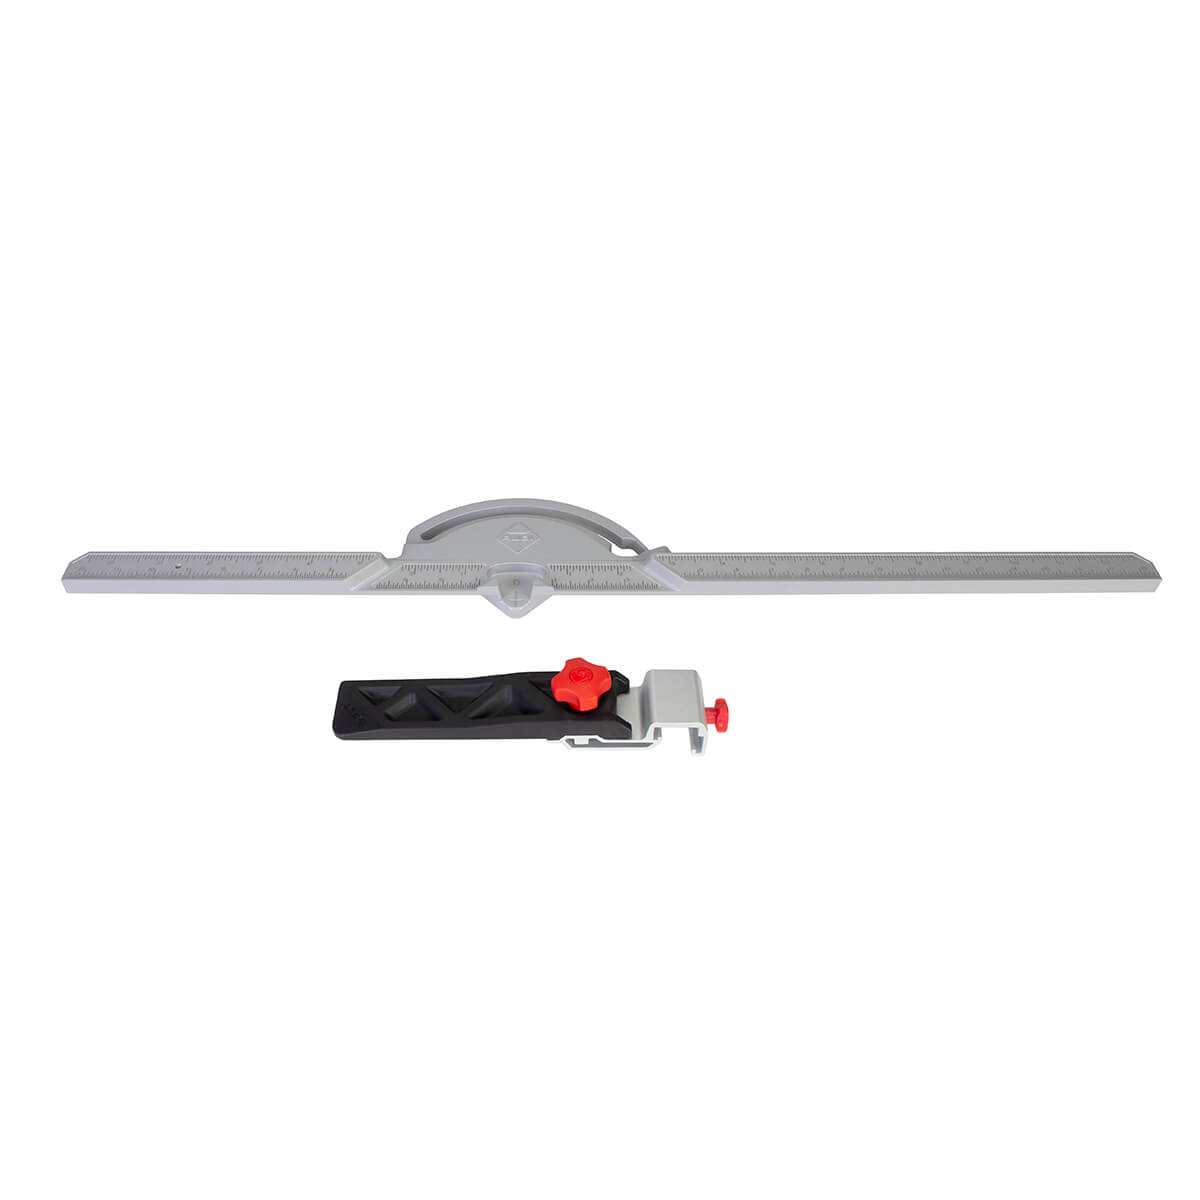 18818 rubi tr magnet tile cutter ruler guide with lateral stop